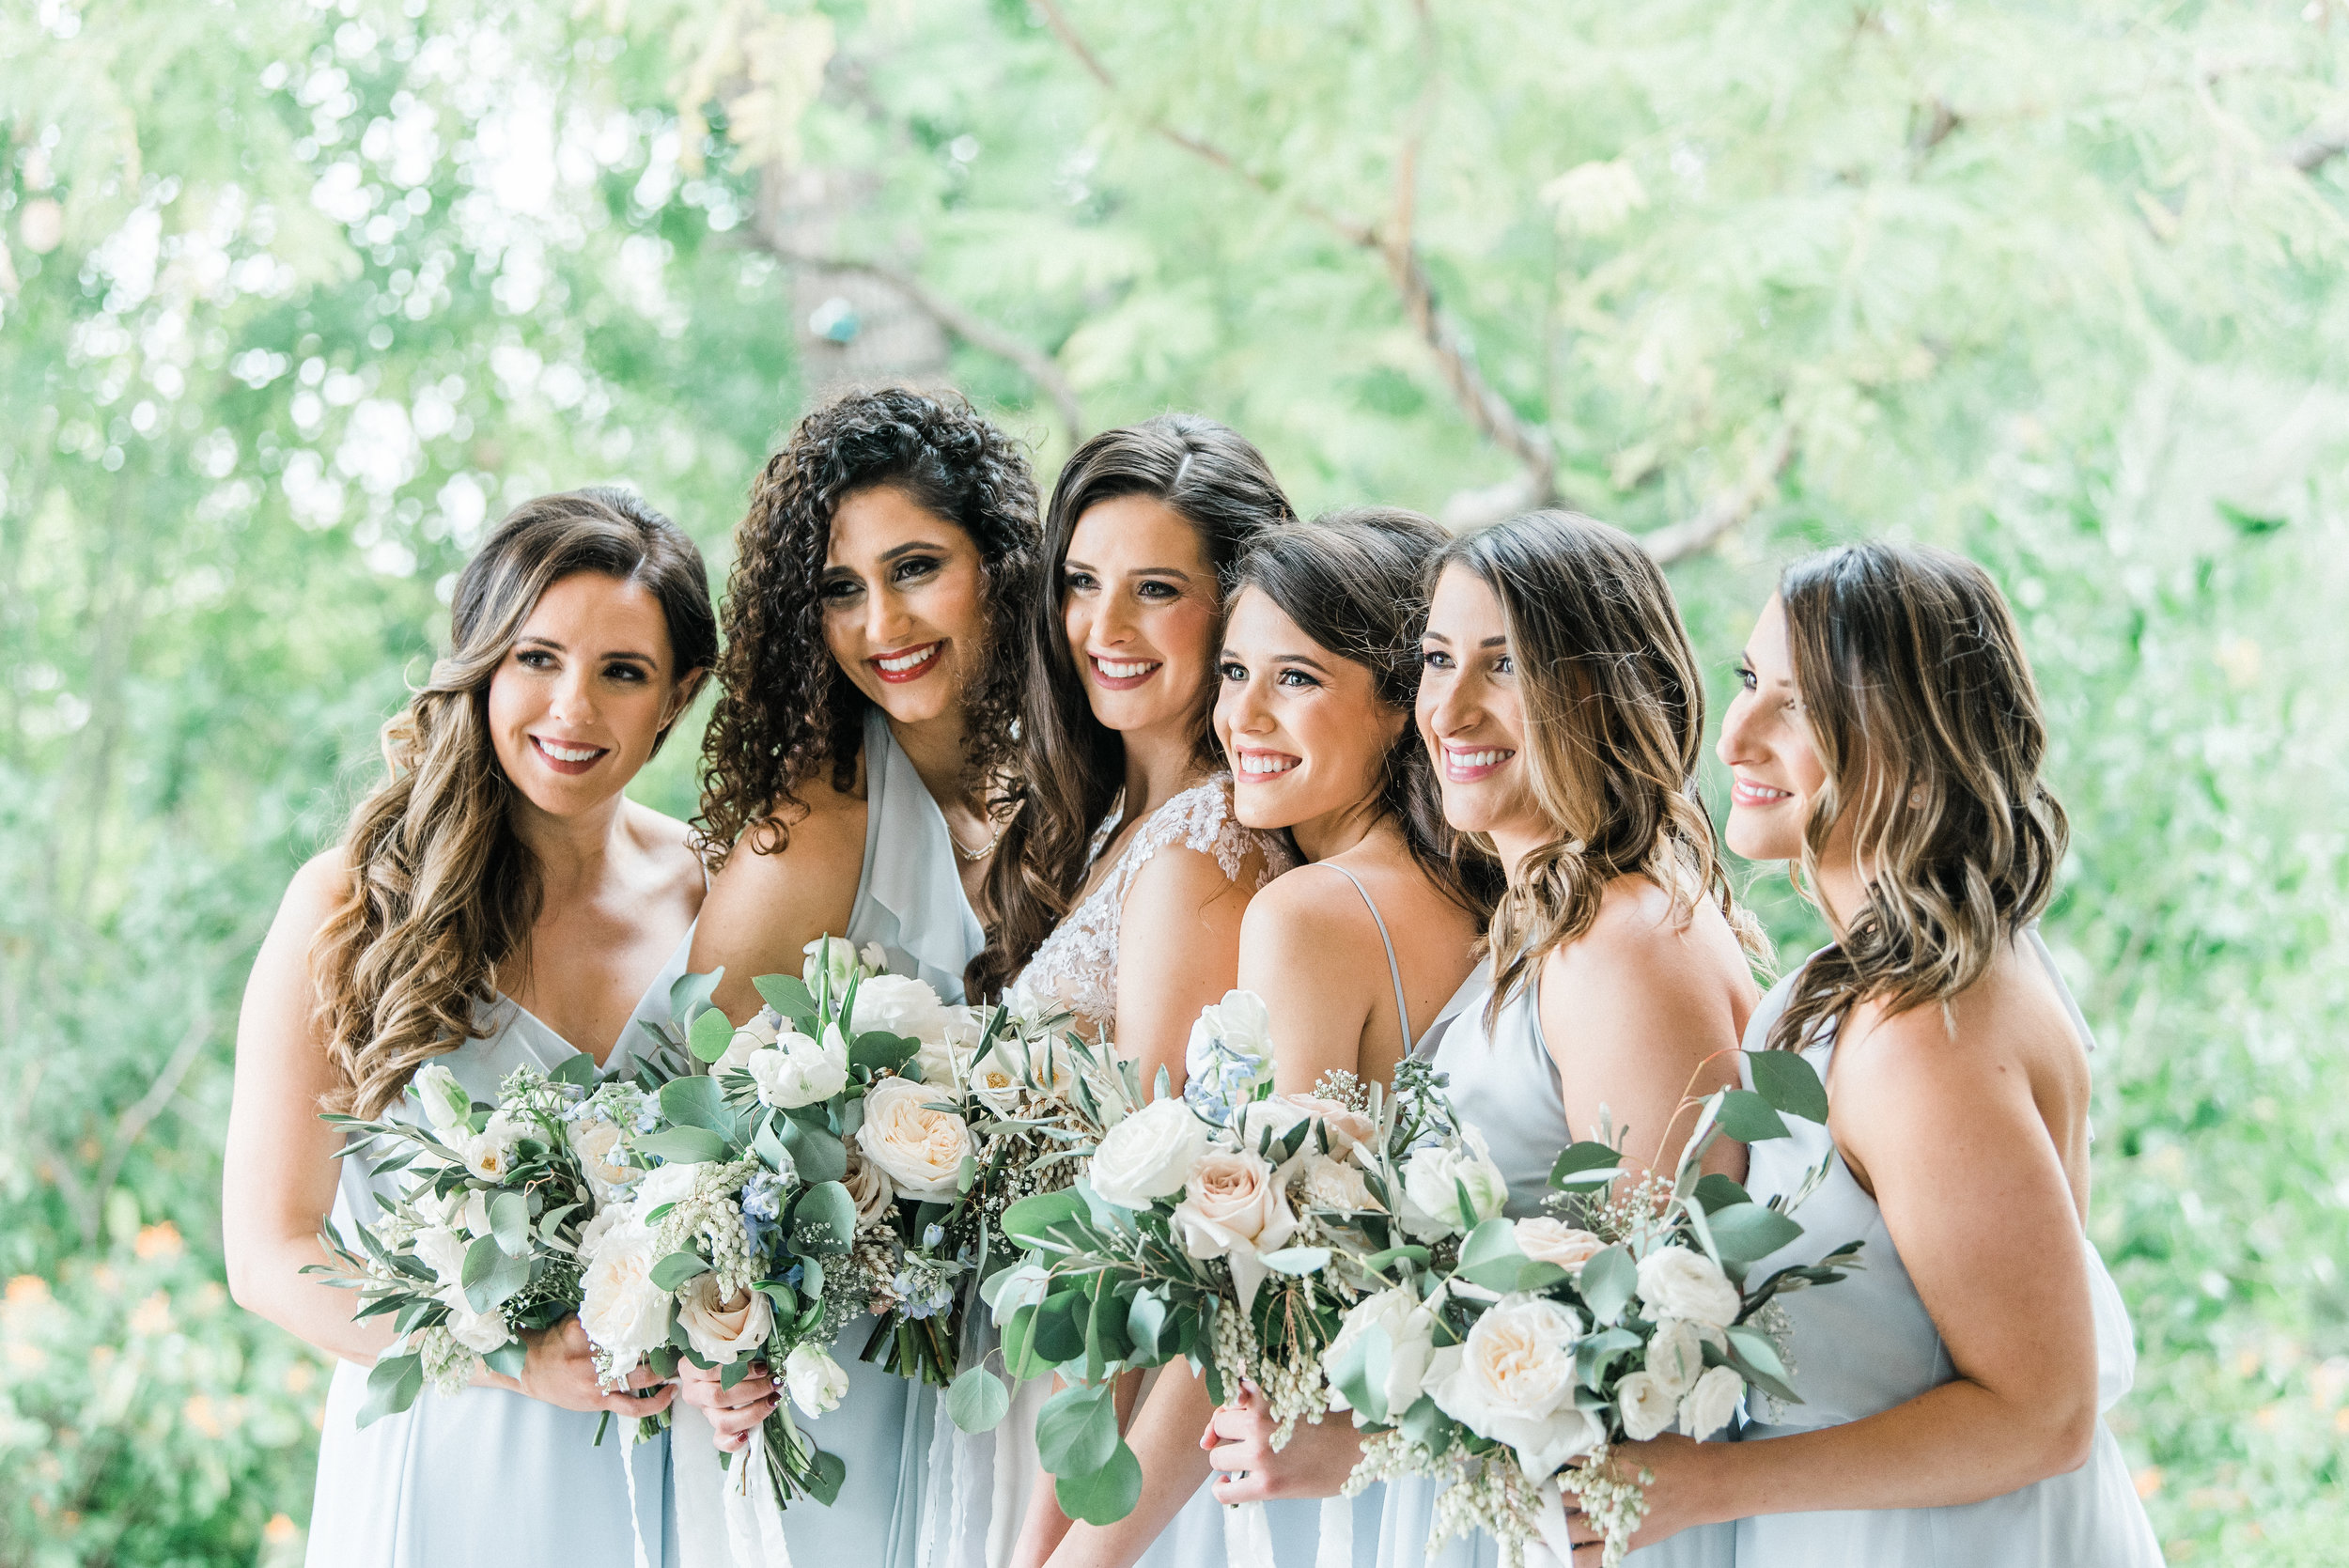 wedding planner, phoenix, arizona, wedding planner phoenix arizona, az, wedding planner phoenix az, sedona, Scottsdale, wedding coordinator, day of coordinator, wedding design, destination wedding planner, weddings, event planner